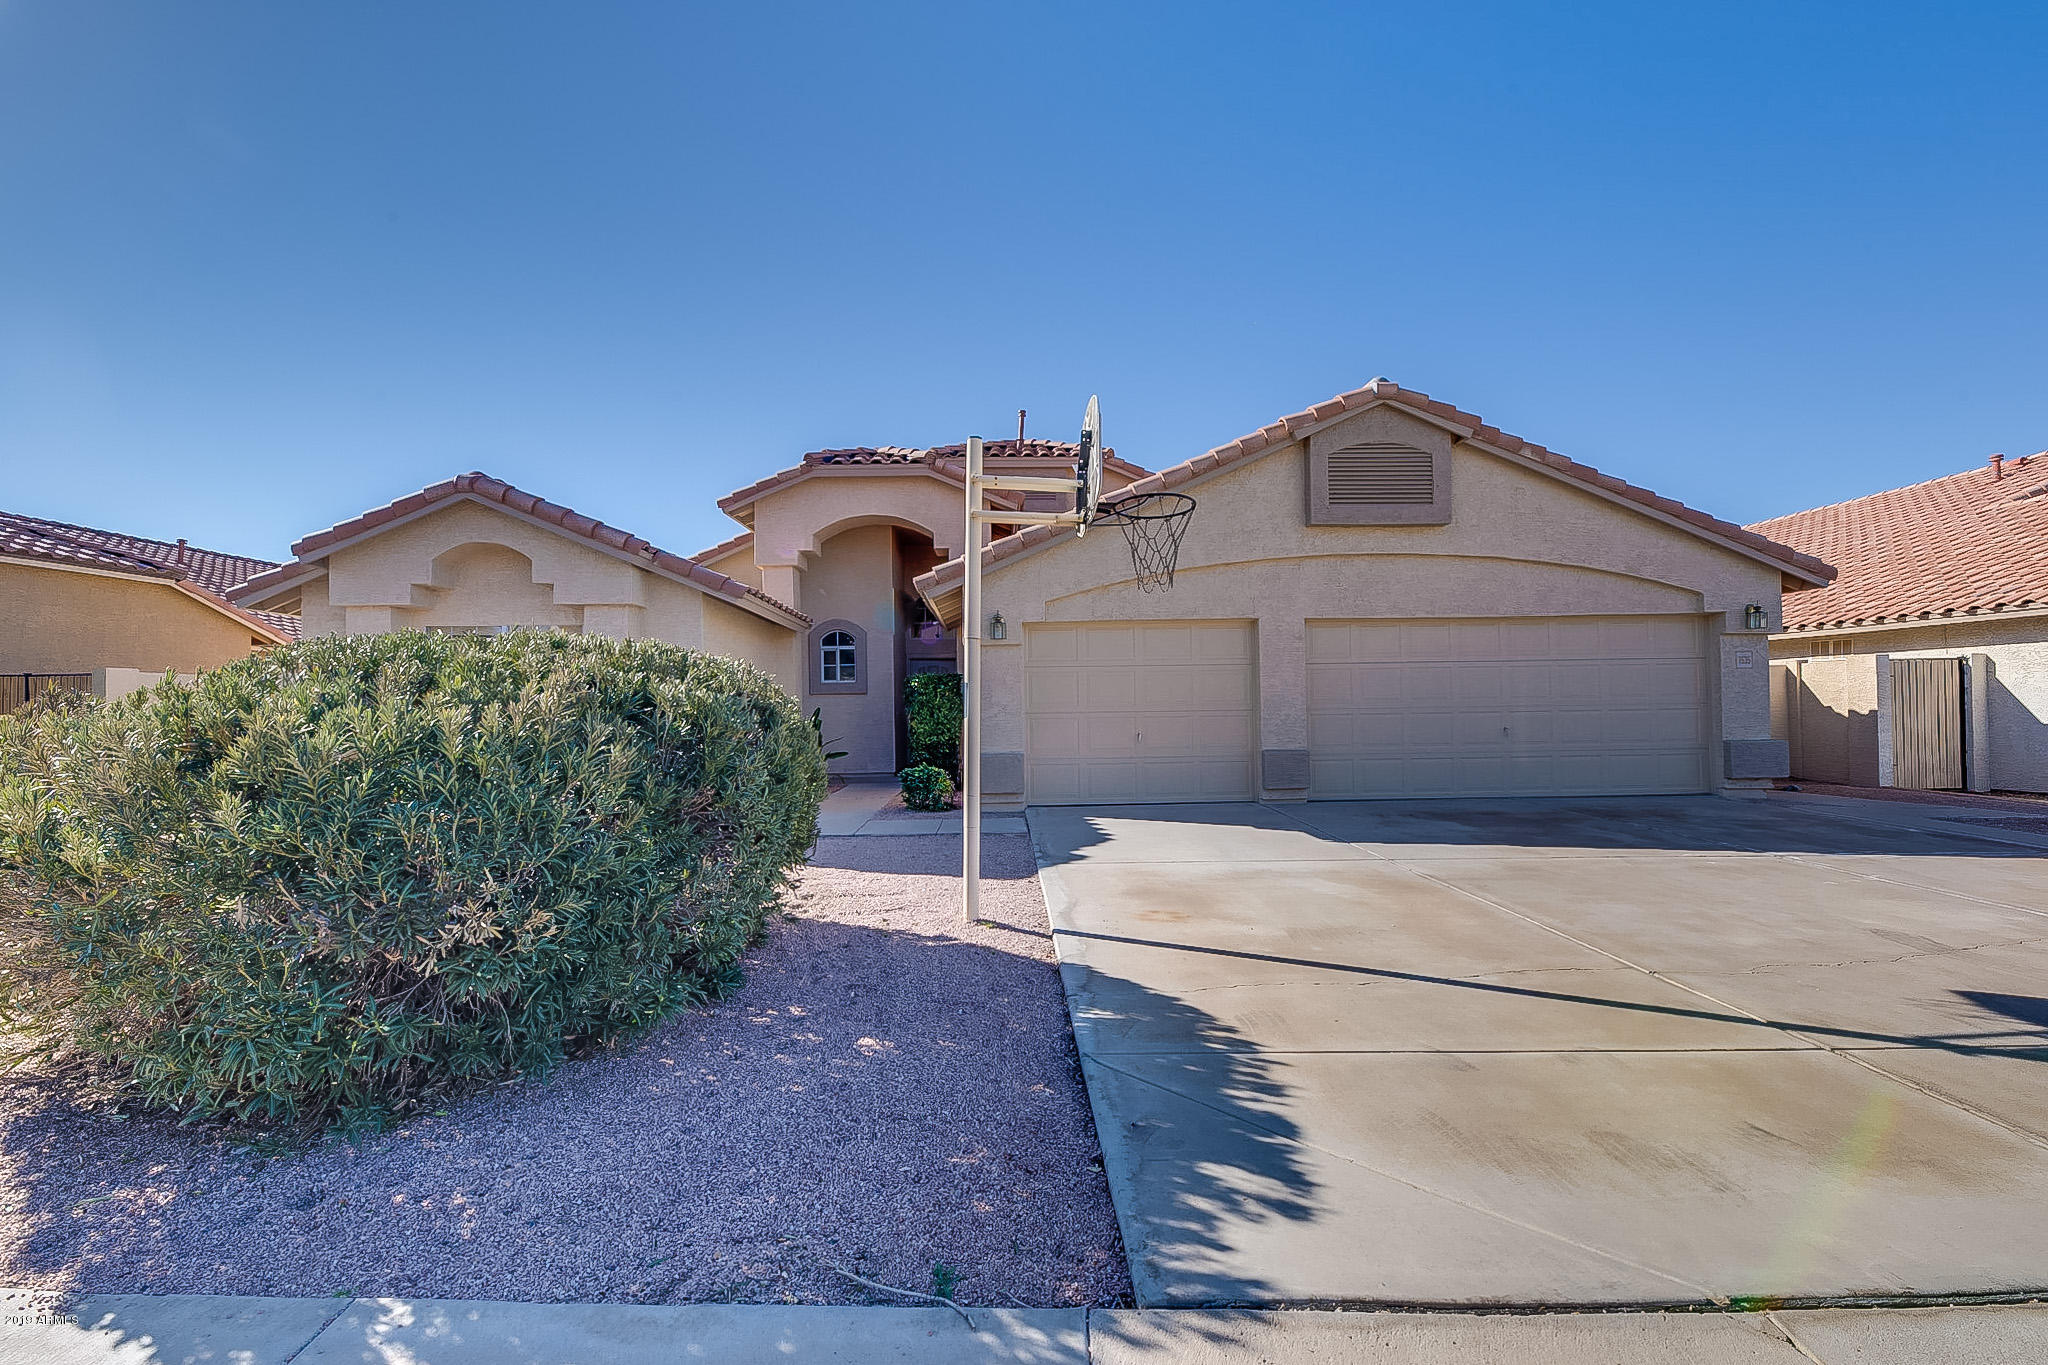 Photo of 7535 E LOMPOC Circle, Mesa, AZ 85209